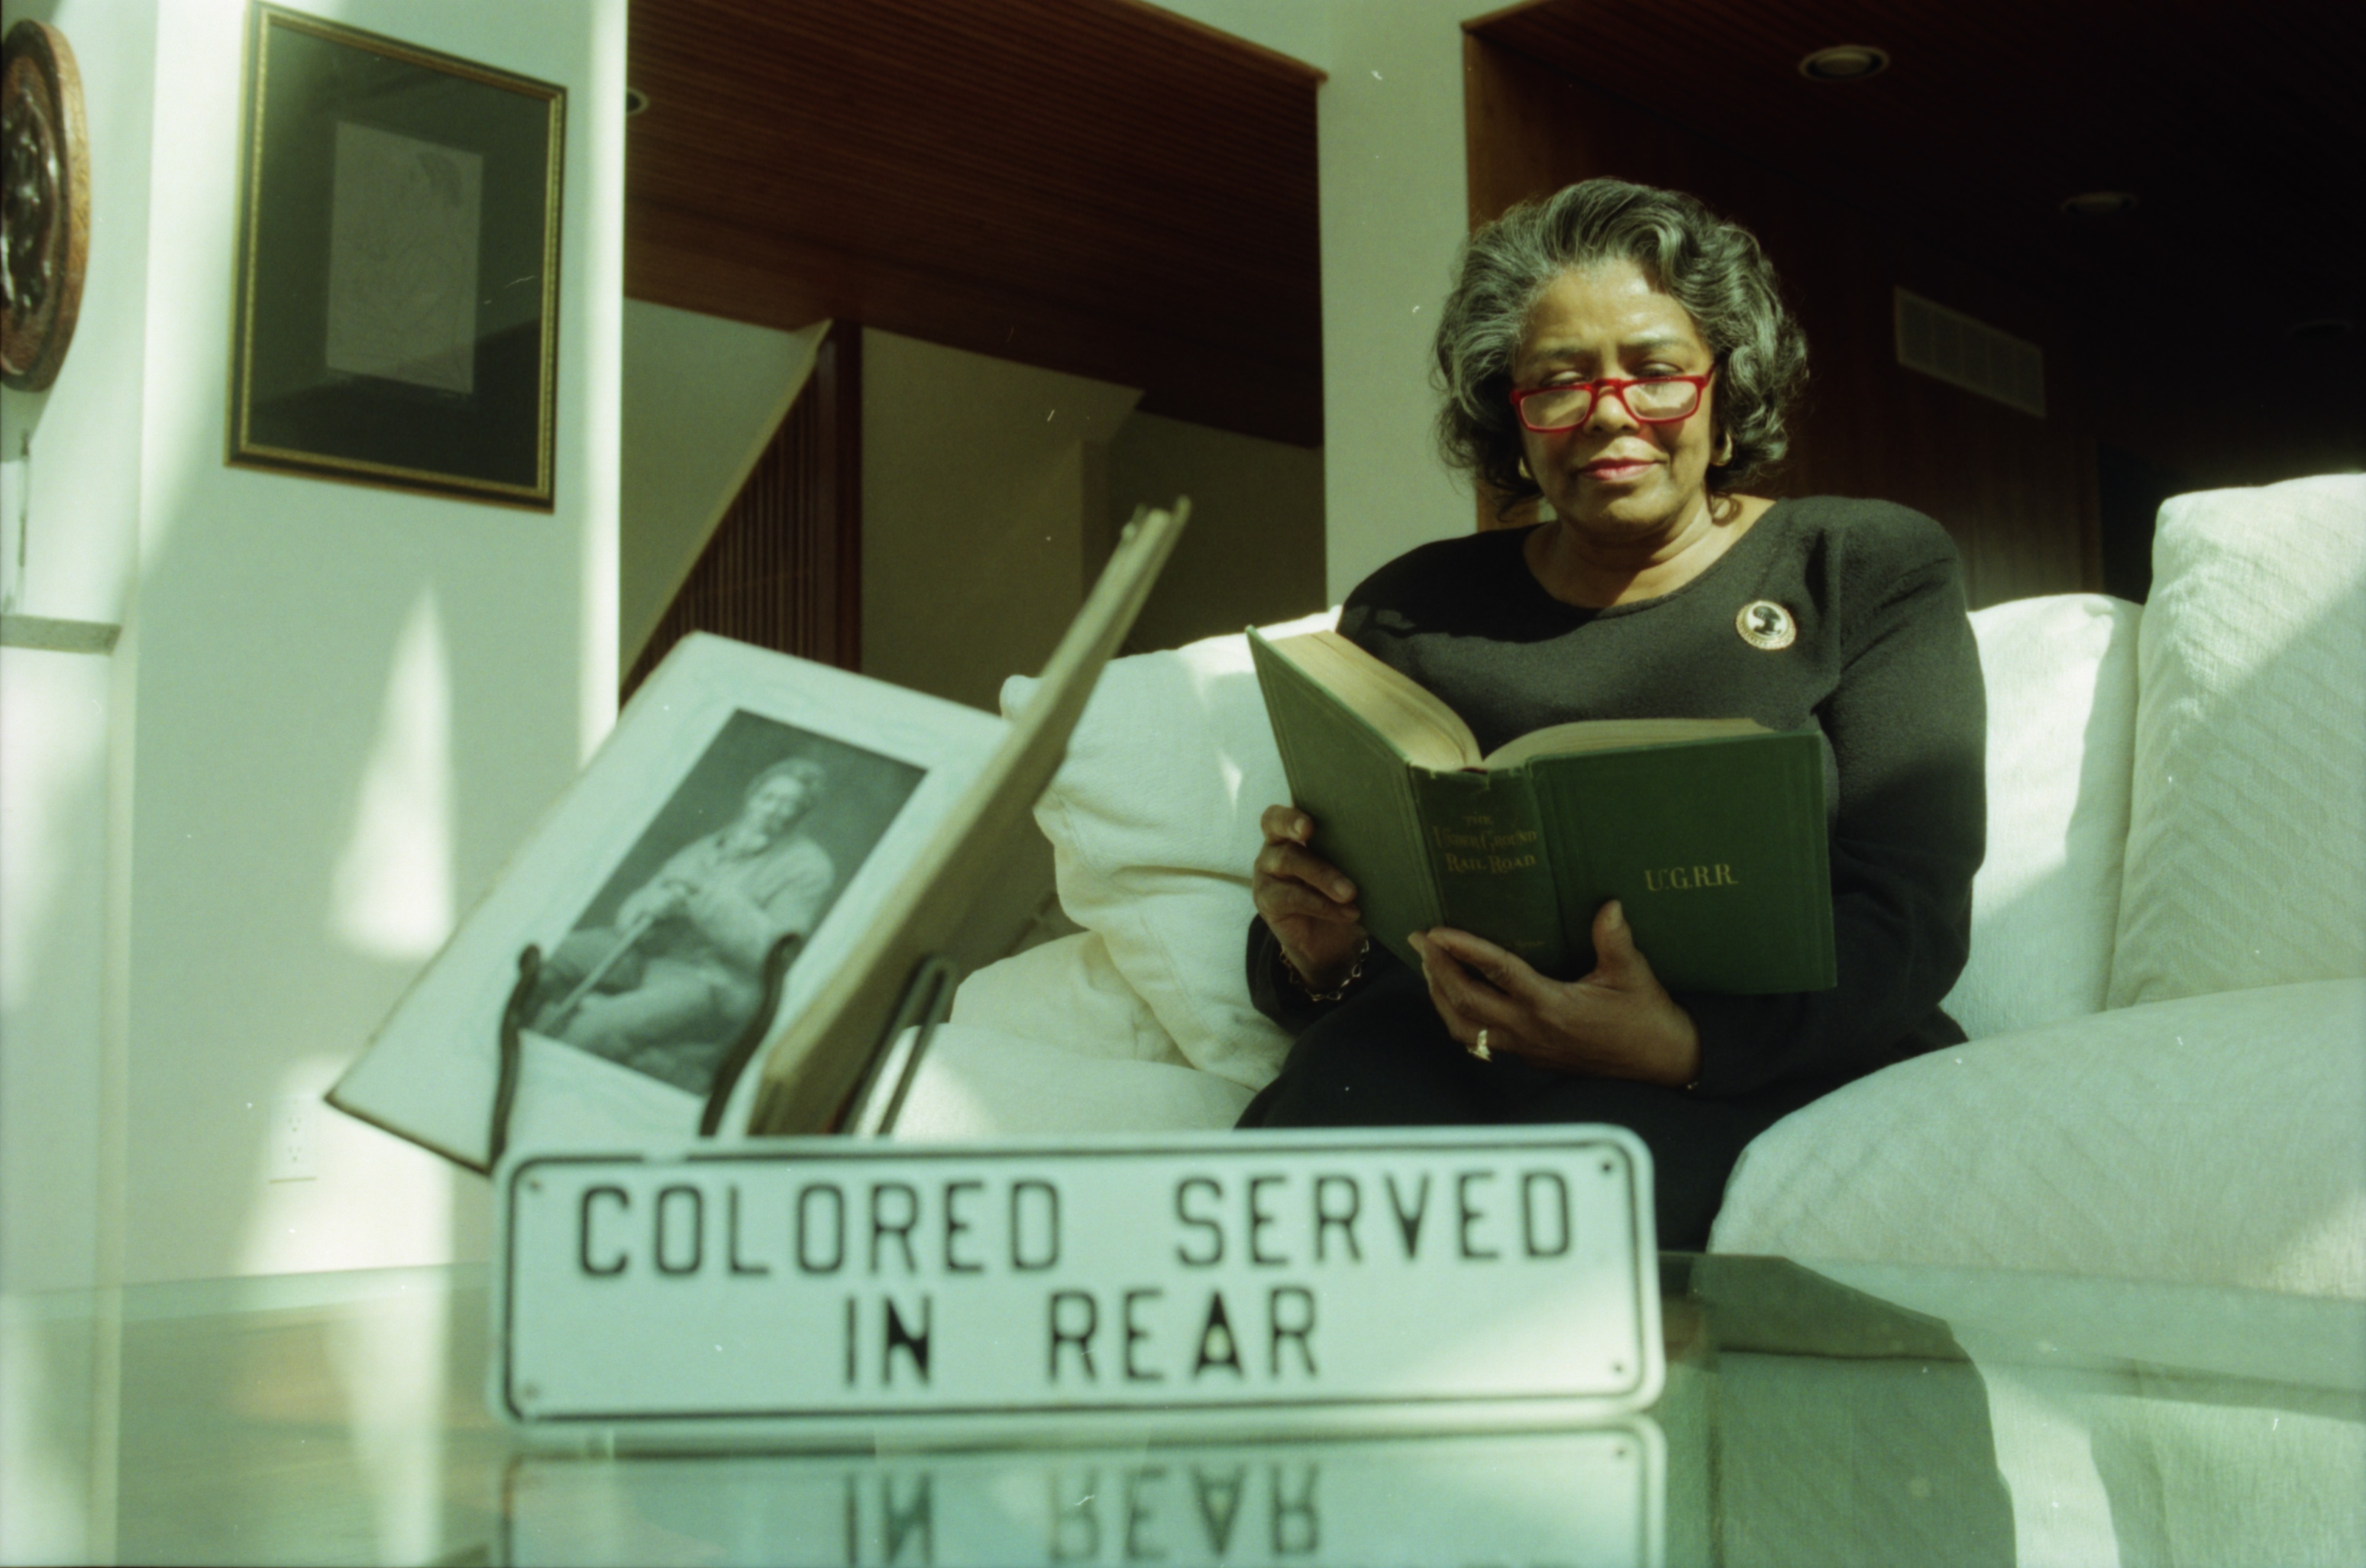 Barbara Meadows Reads Black History Book, March 1996 image